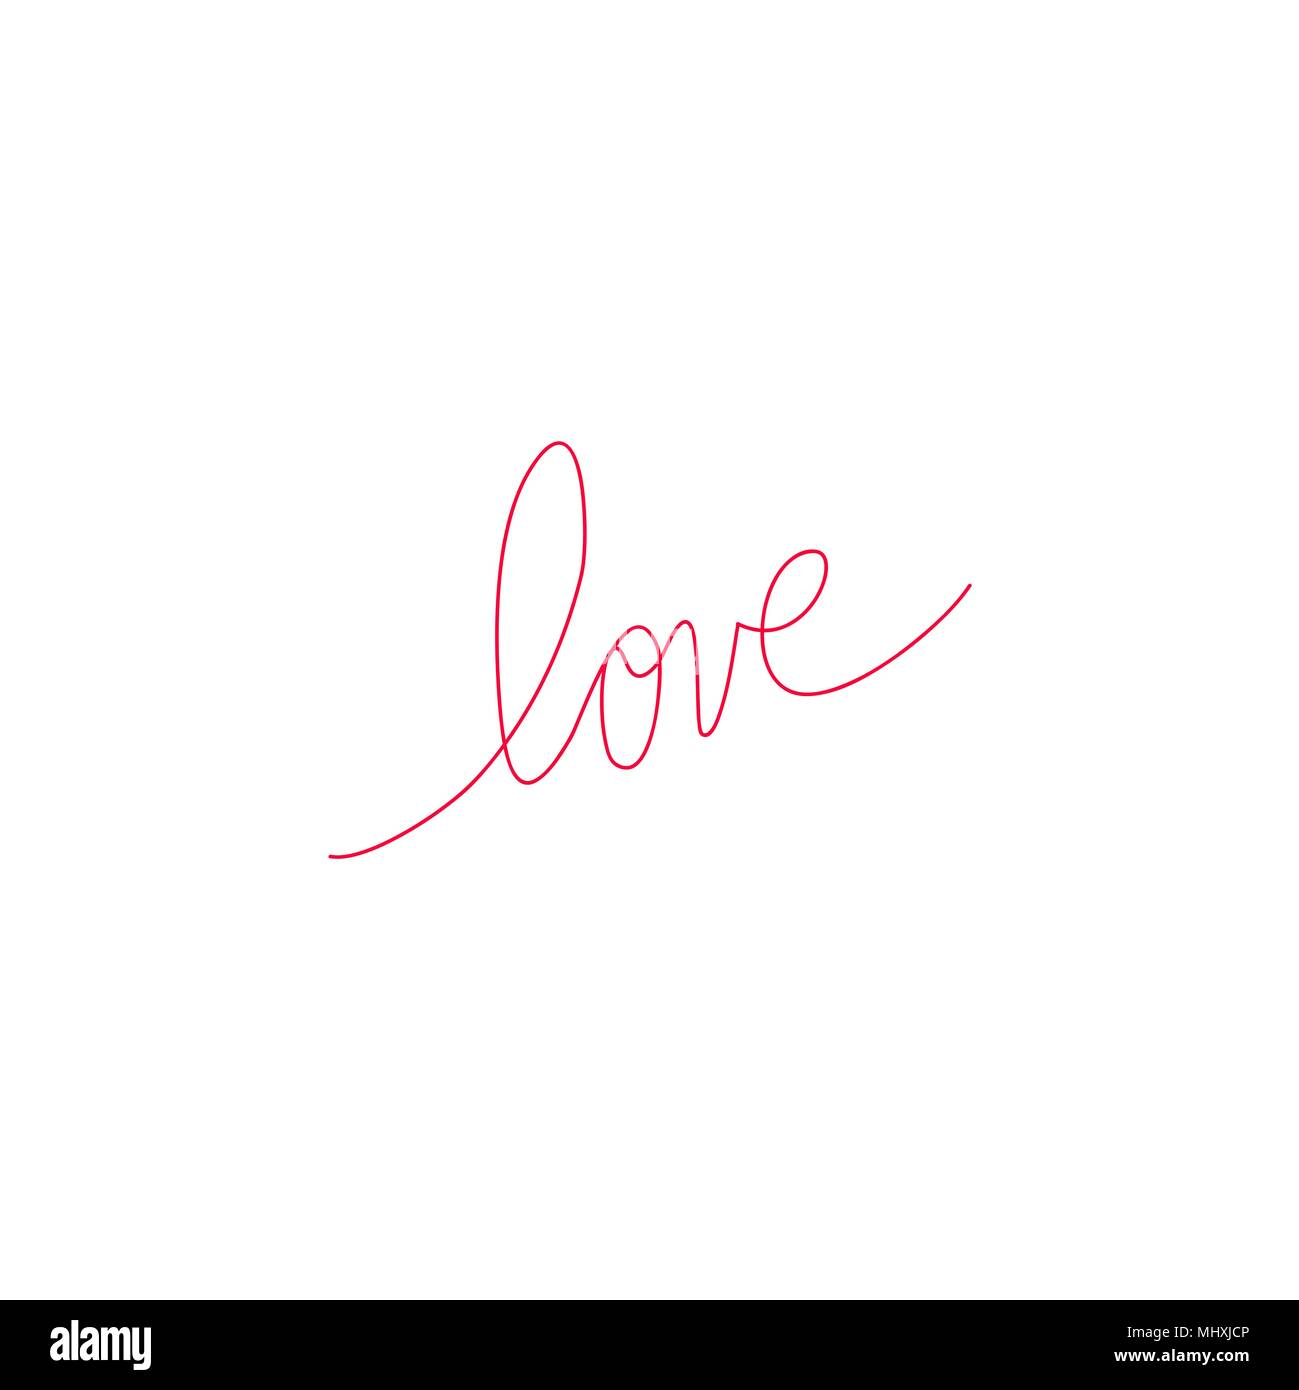 Heart And Love In Continuous Drawing Lines In A Flat Style In